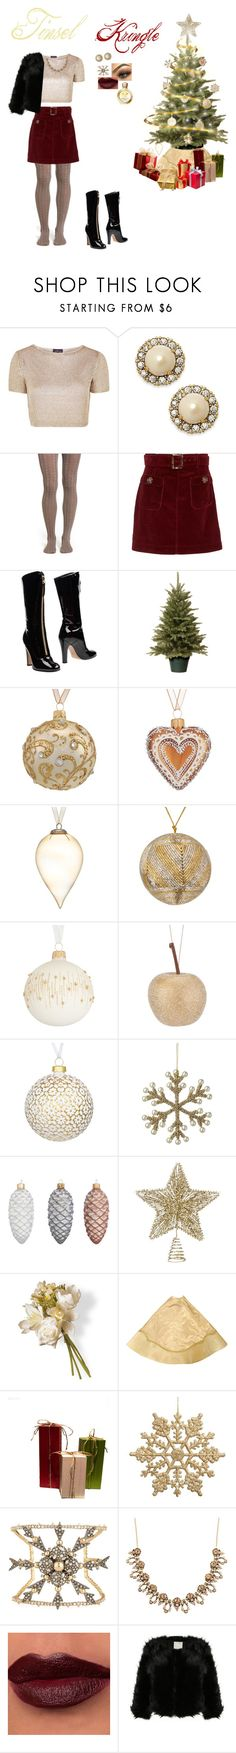 """Tinsel Kringle"" by cammy-2396 ❤ liked on Polyvore featuring Topshop, Kate Spade, Nordstrom, AlexaChung, Valentino, Hostess, John Lewis, Parlane, National Tree Company and Alexis Bittar"